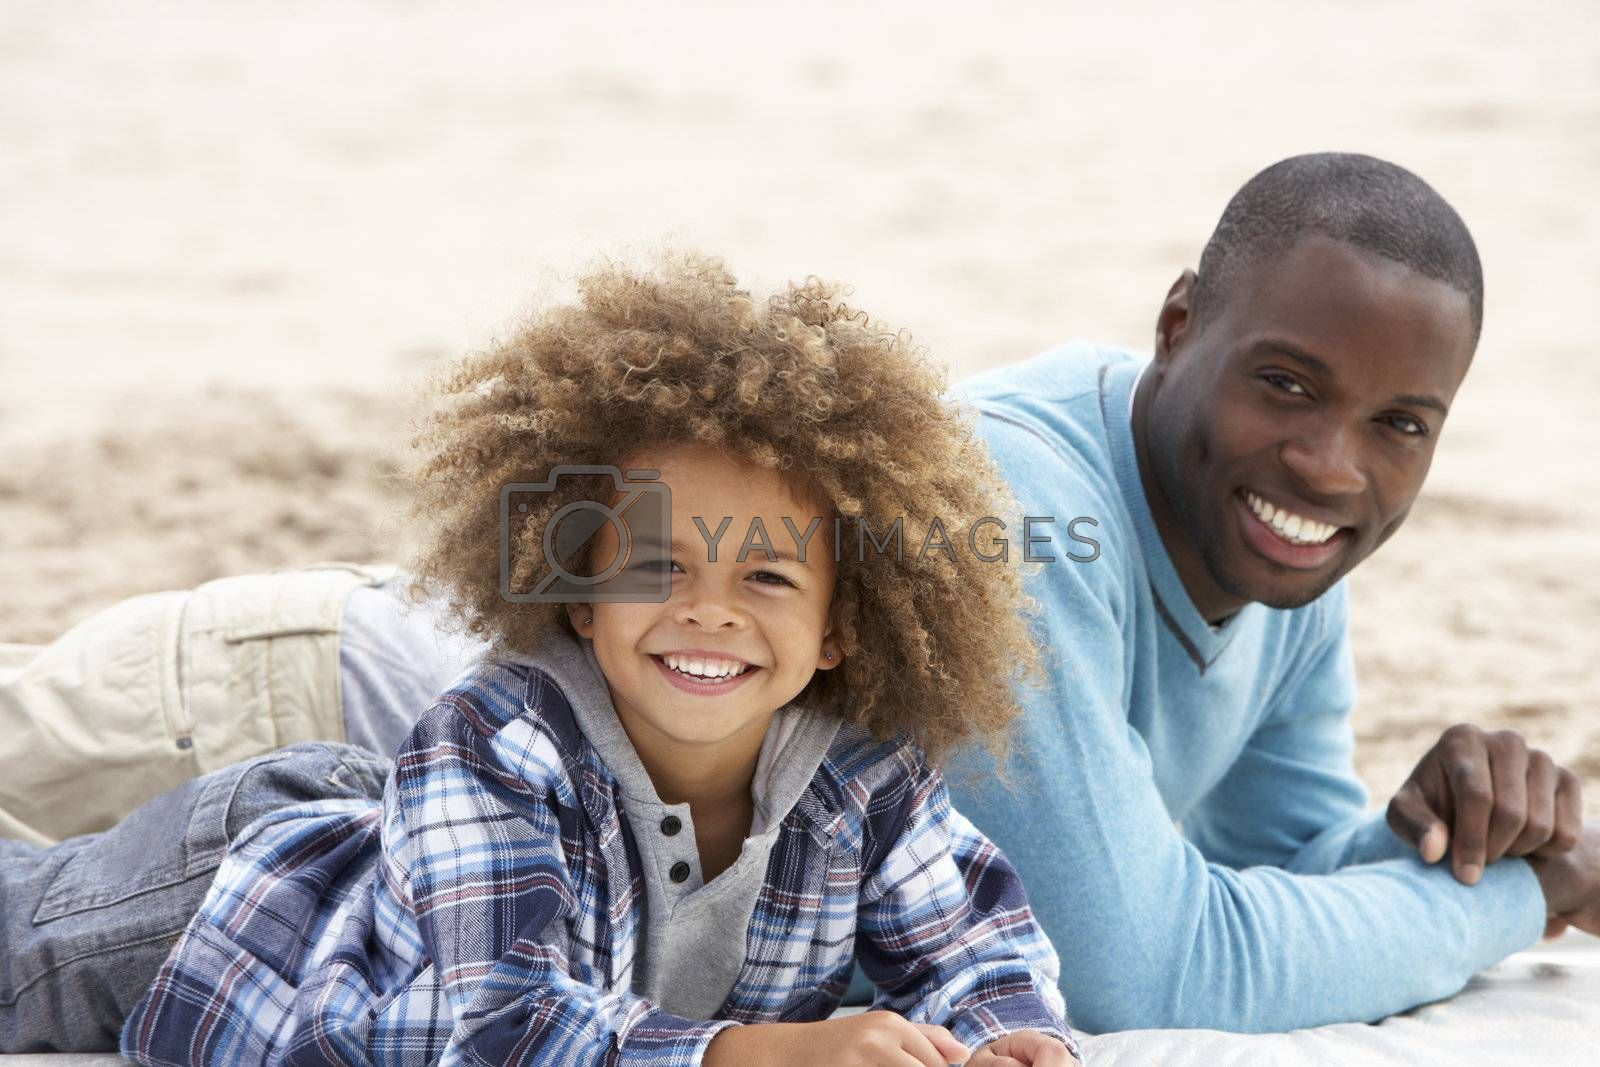 Royalty free image of Father and son laying on beach by omg_images